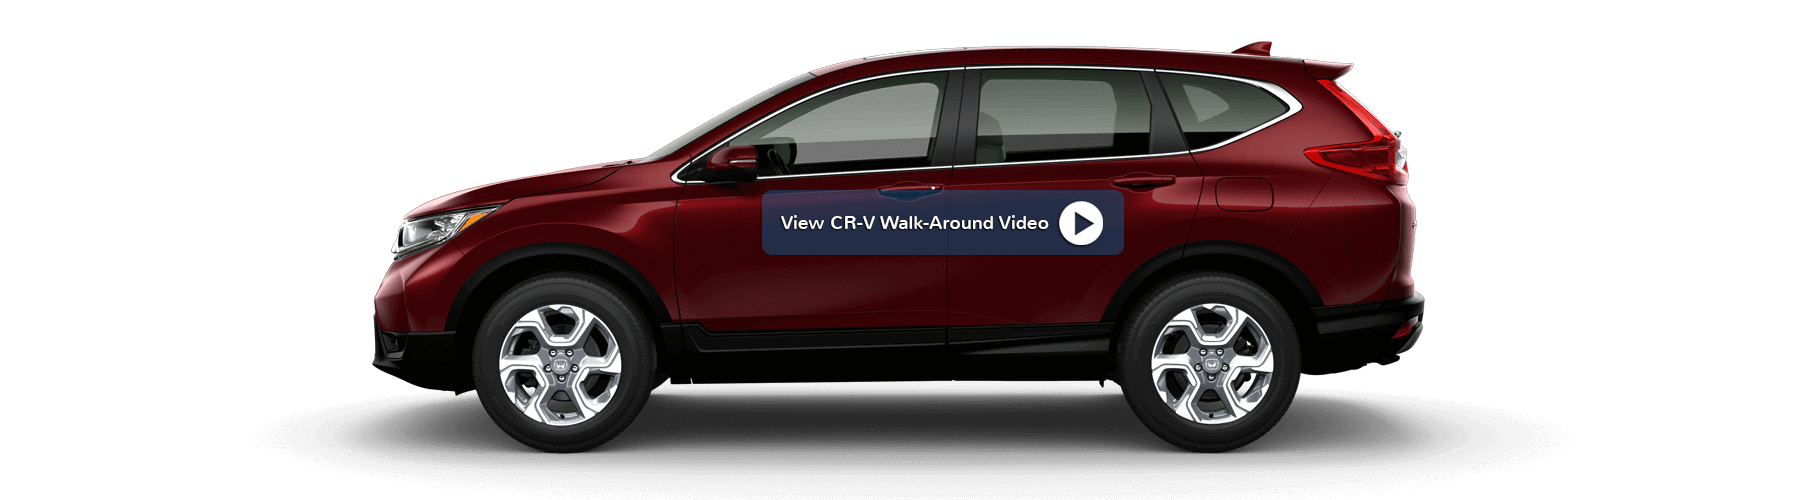 2017 Honda Cr V New England Dealers 1999 Crv Parts Route 22 Side Profile